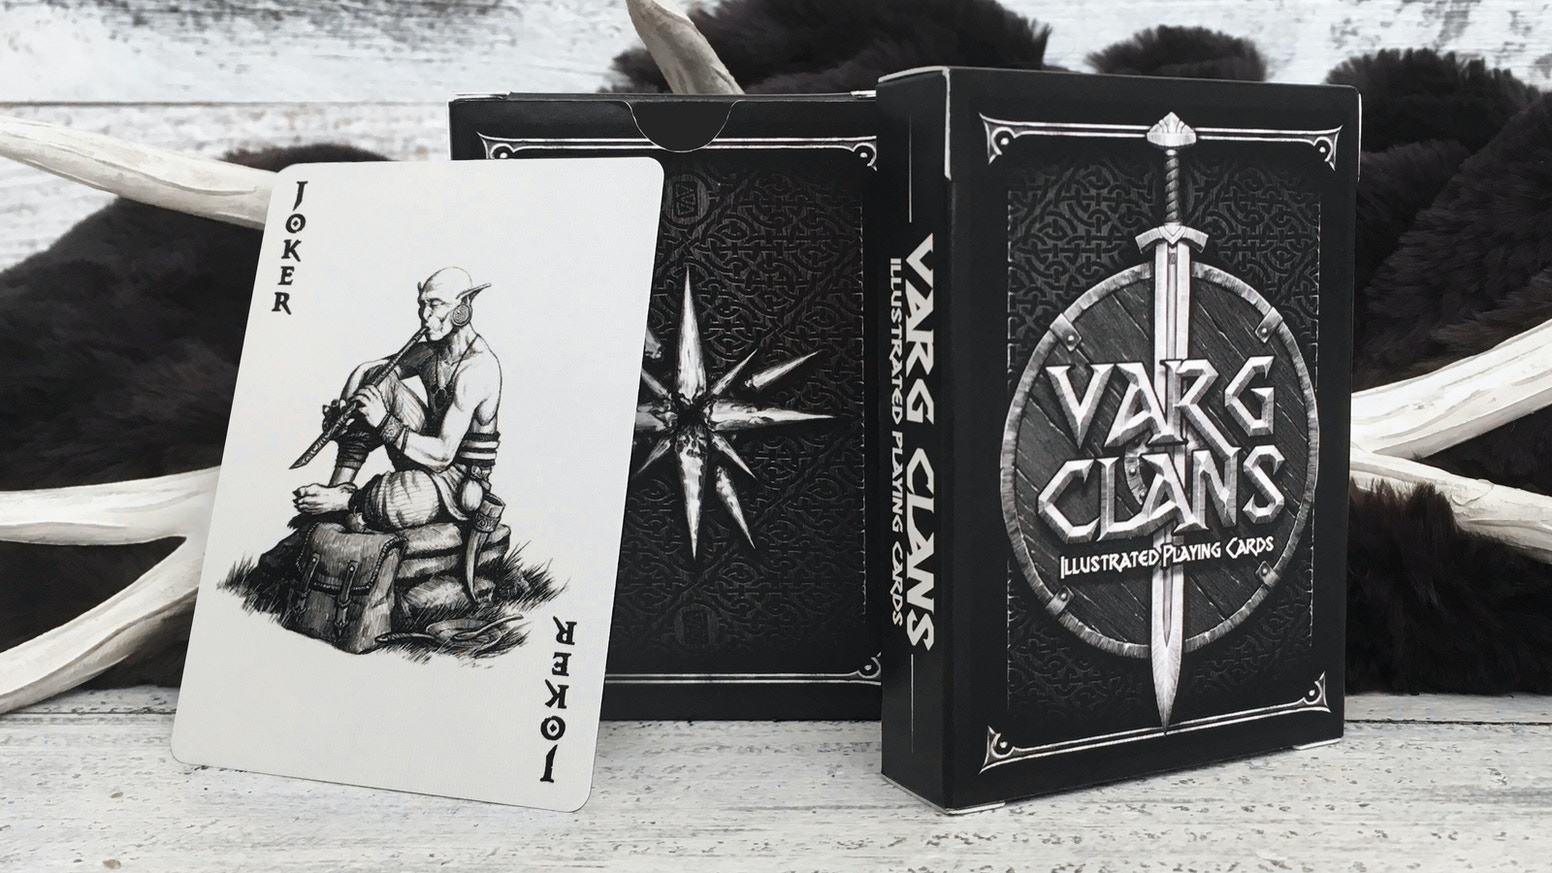 An illustrated playing card deck featuring characters from the Omenshard universe by fantasy artist Blake E. Davis.